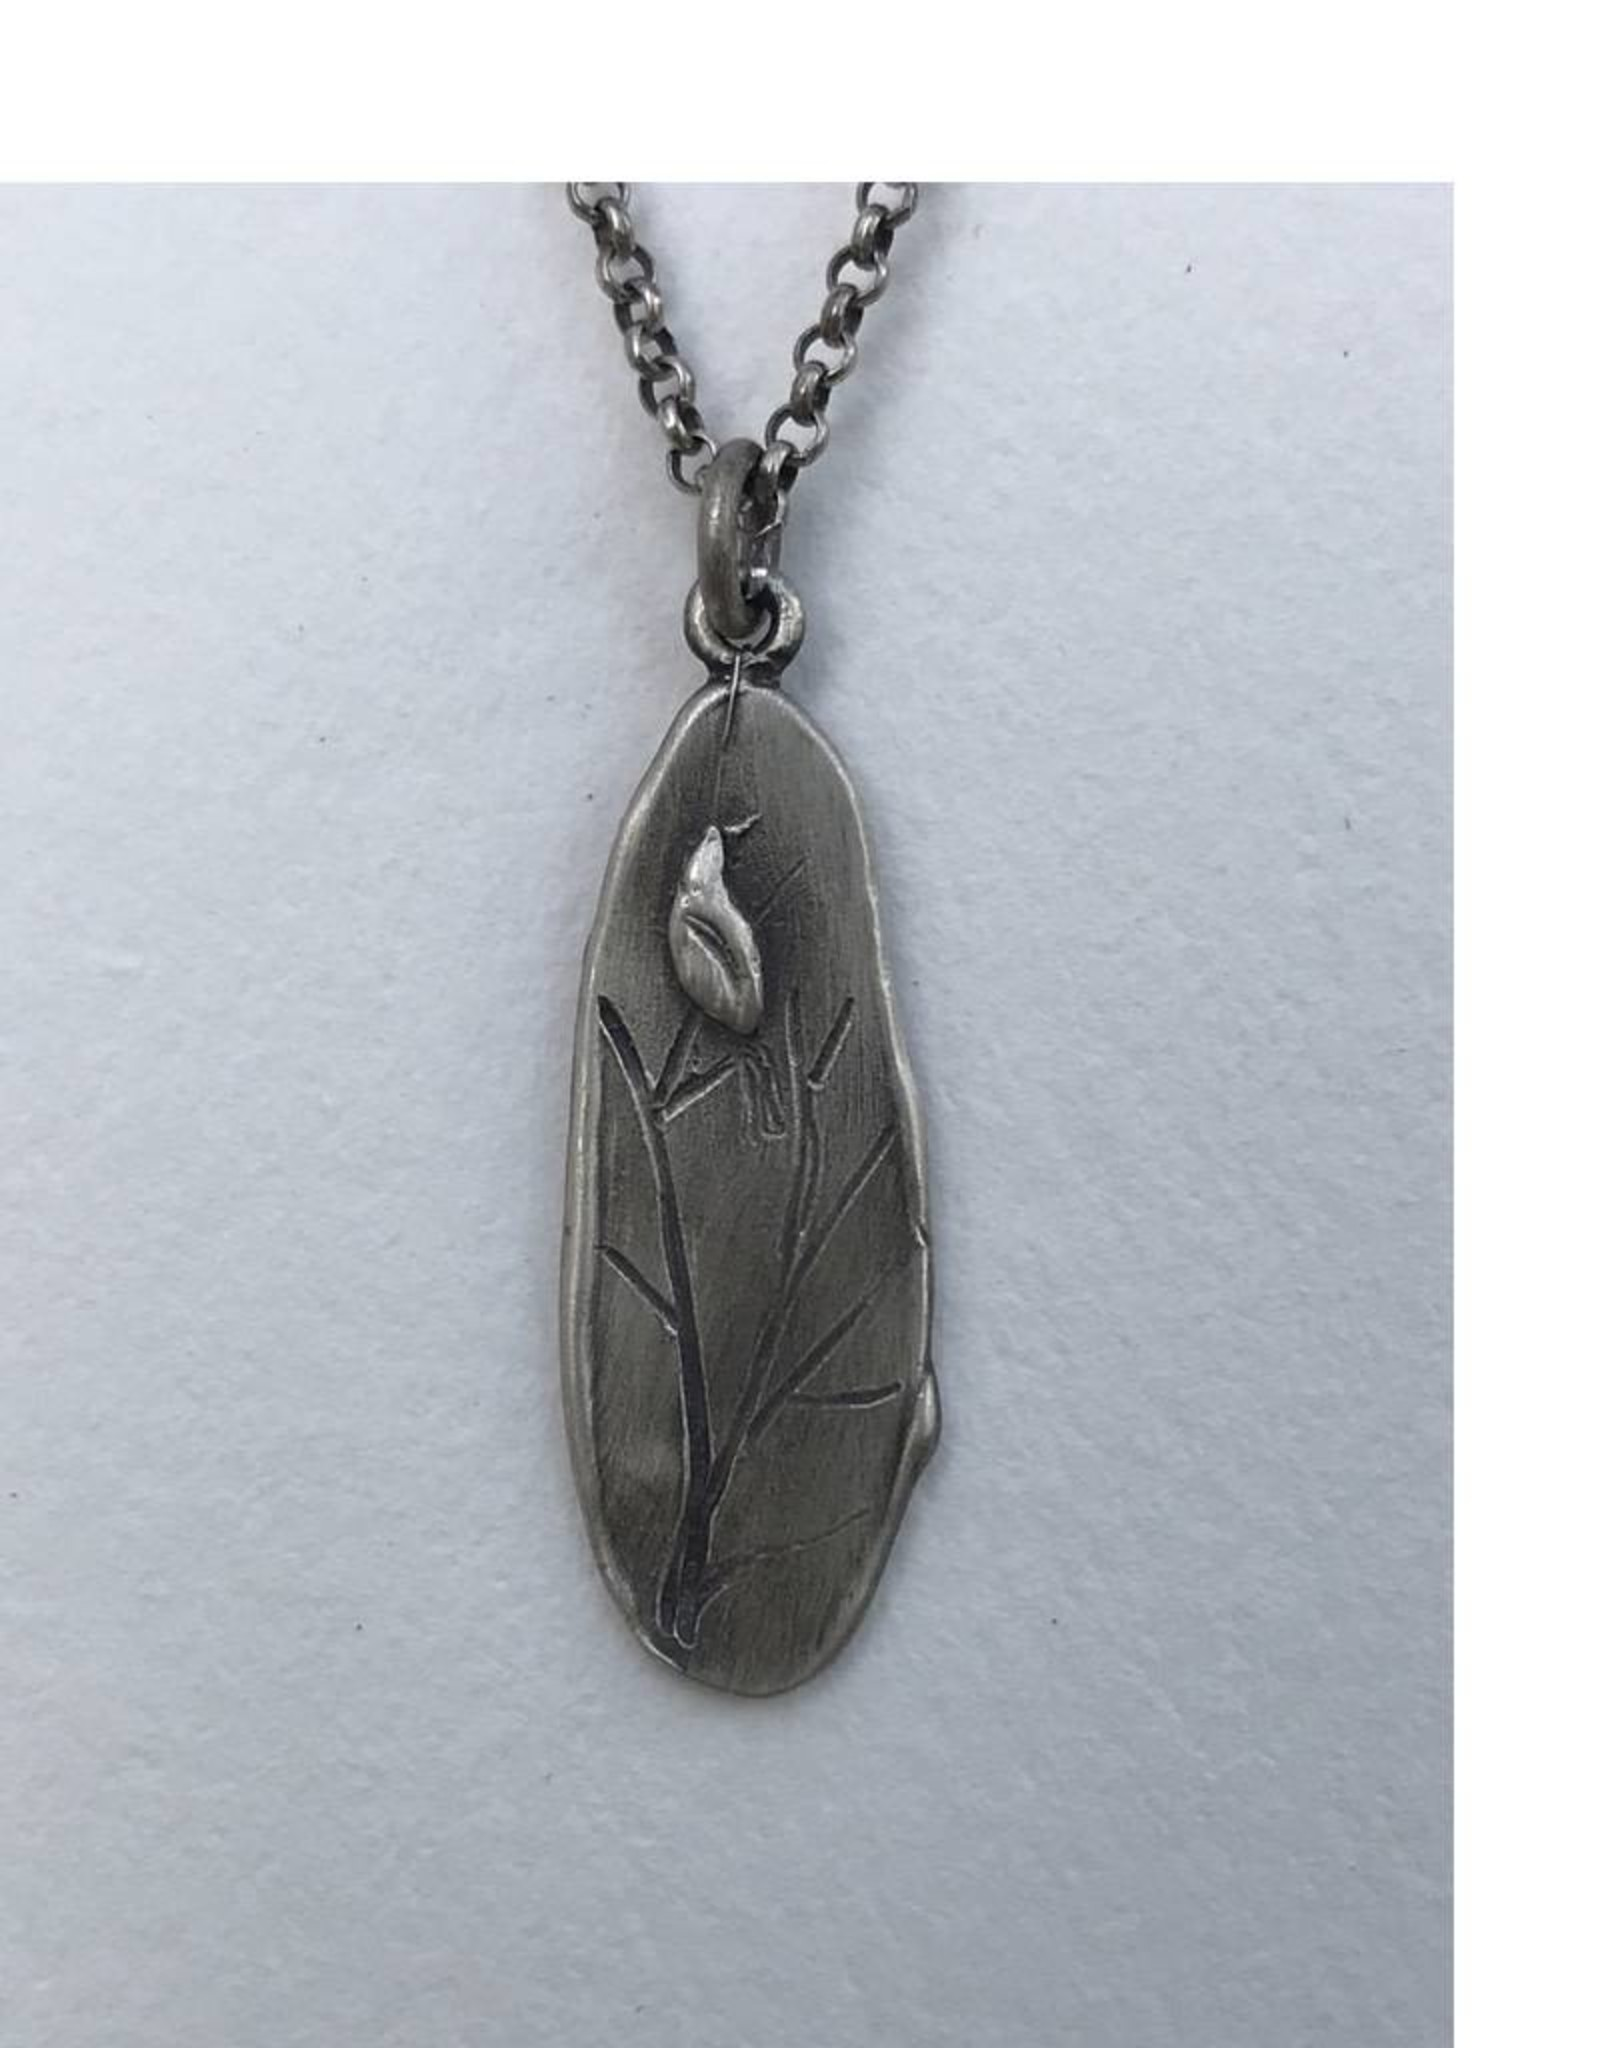 RN138A Refurbished Silver Necklace and Pendant